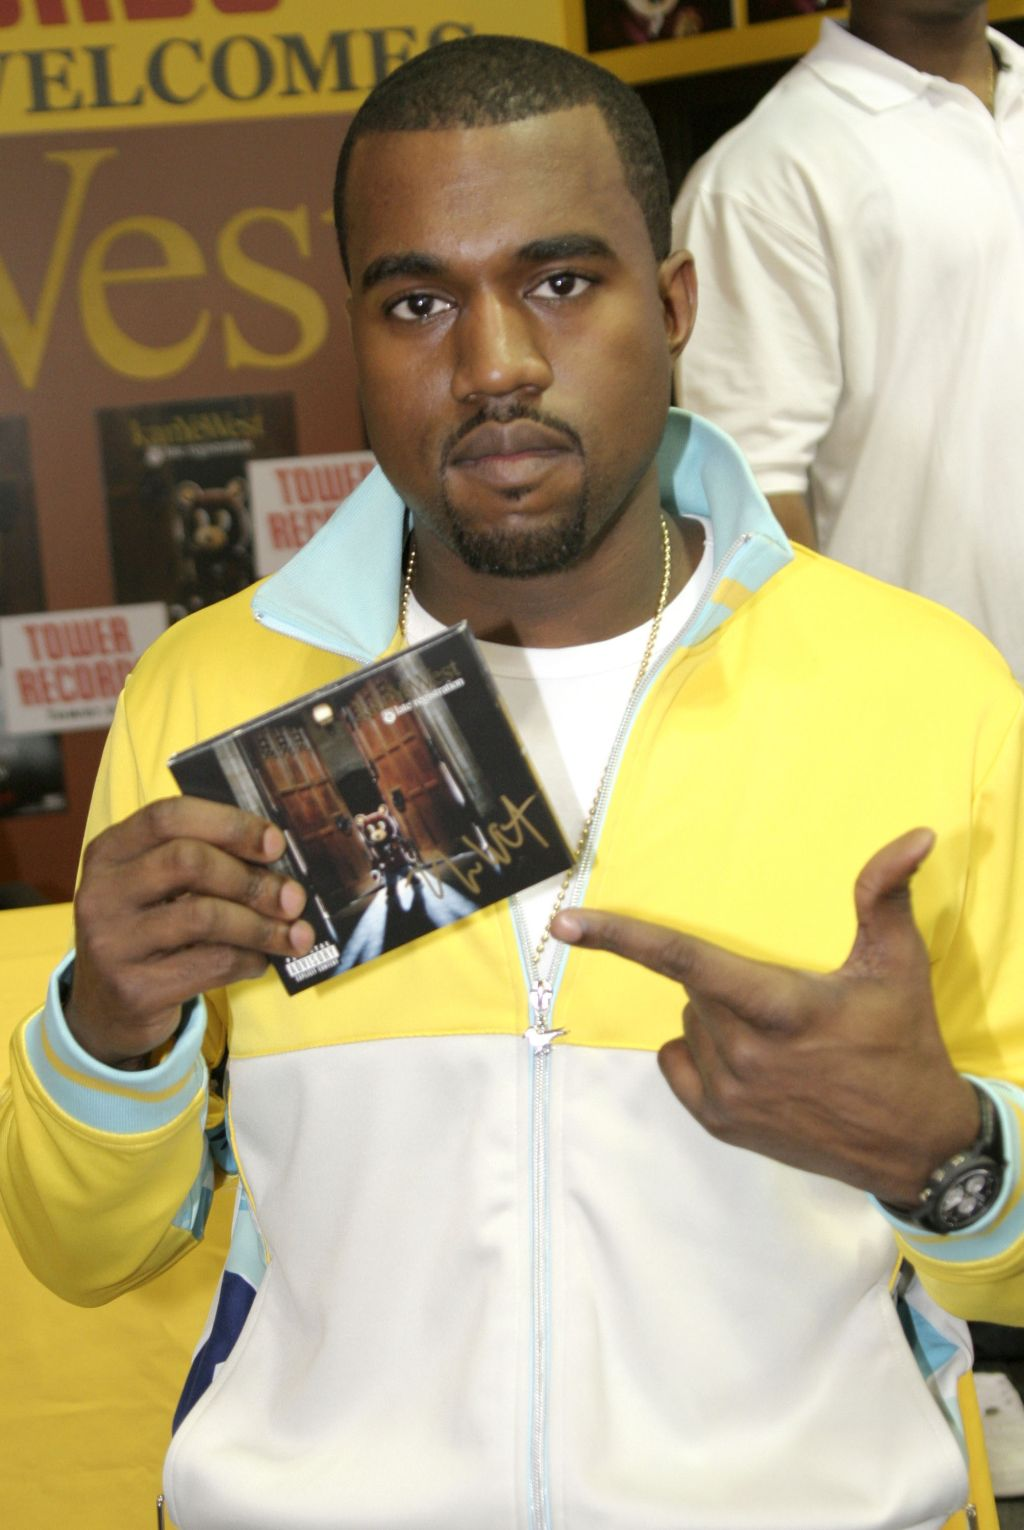 Kanye West Signs His Album Late Registration at Tower Records in New York City - August 30, 2005